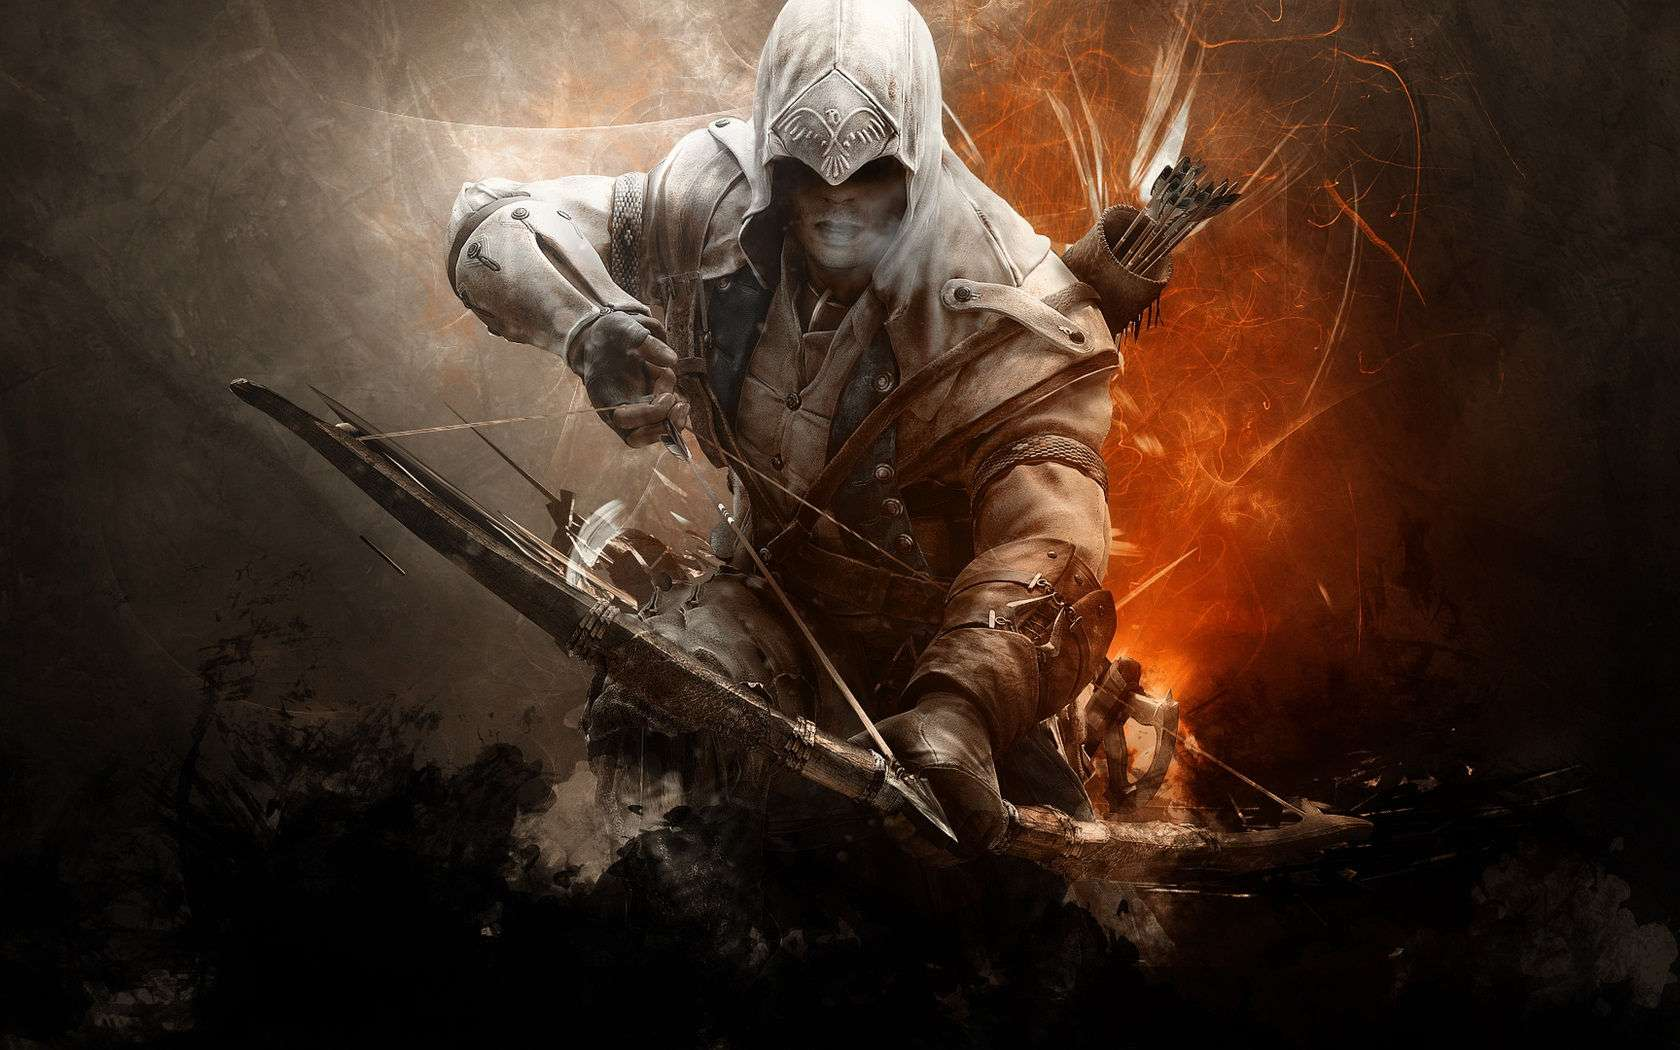 Assain Creed Video Game Wallpaper 037